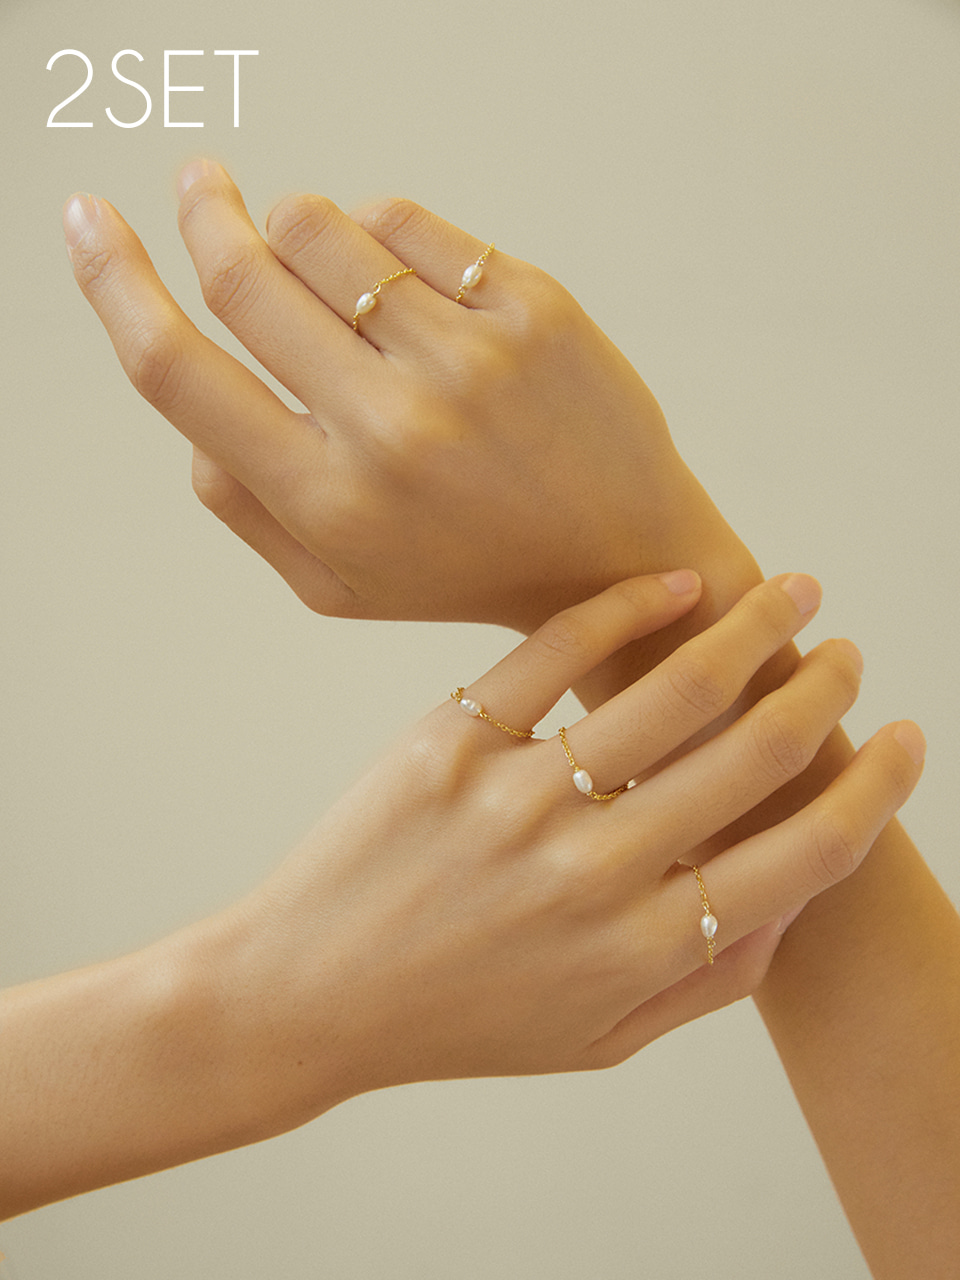 Pearl-chain ring 2et (펄-체인 반지 2set)